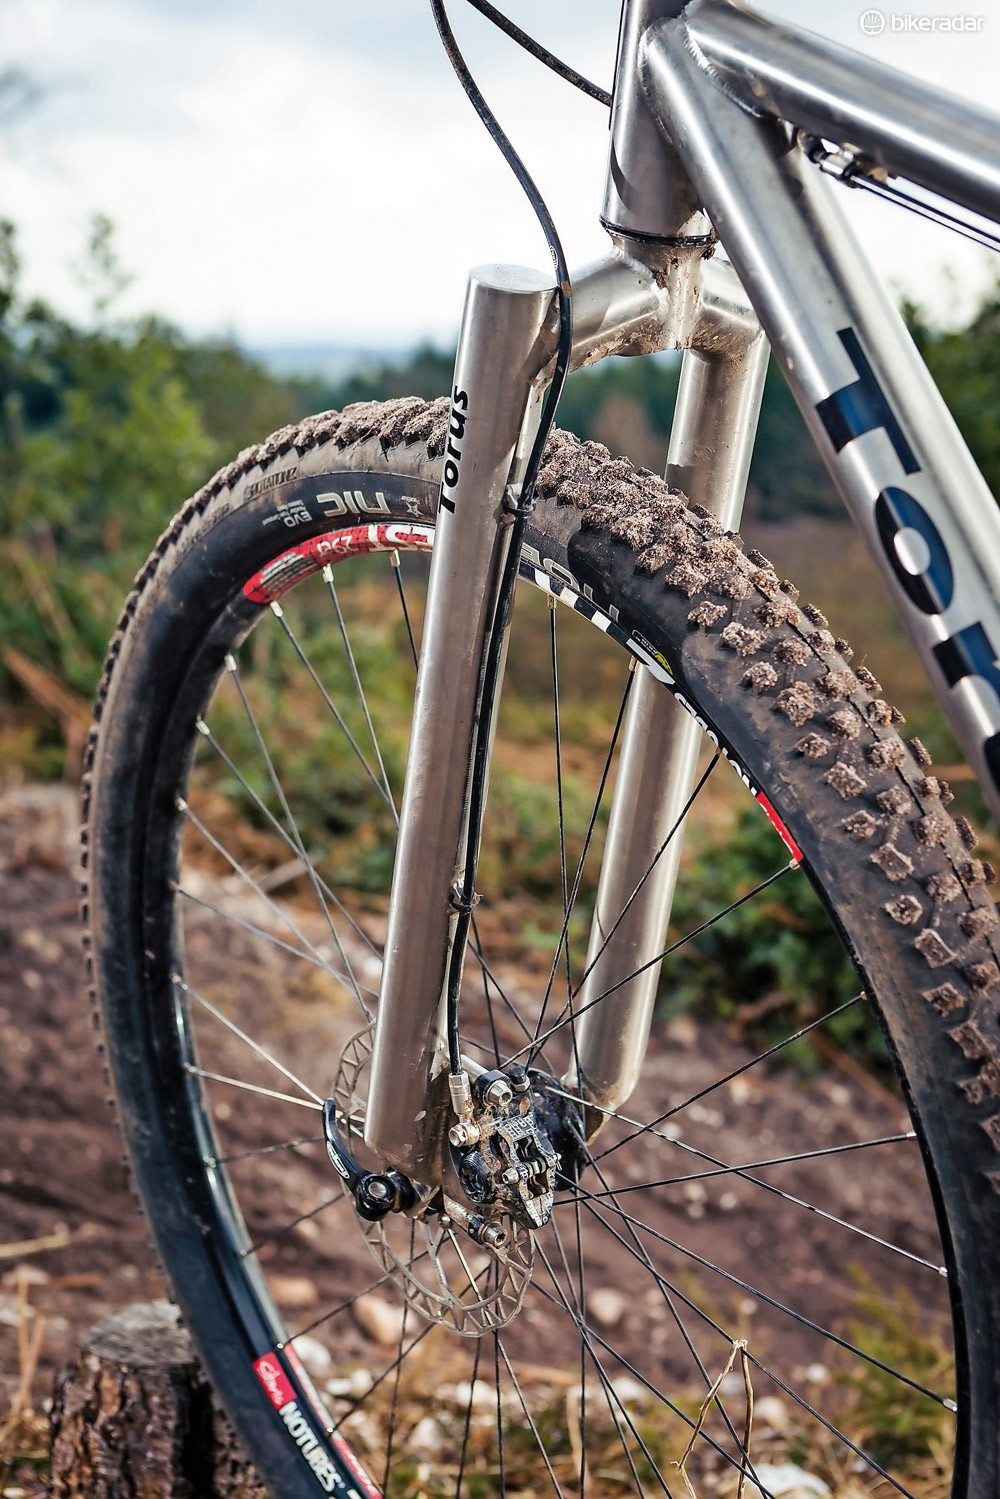 The rigid fork is made from the same plain gauge titanium tubing as the frame